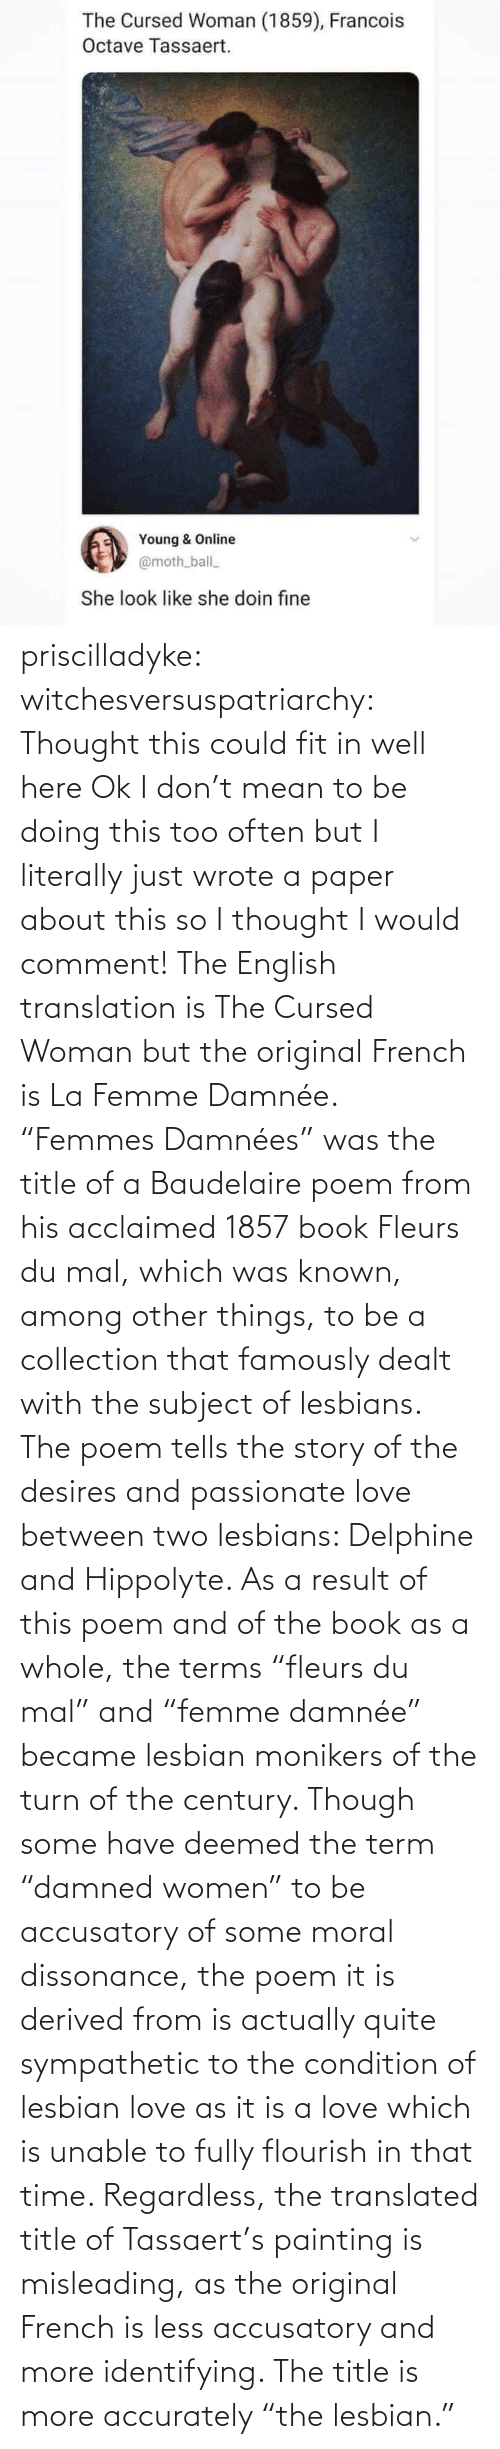 "Women: priscilladyke:  witchesversuspatriarchy: Thought this could fit in well here   Ok I don't mean to be doing this too often but I literally just wrote a paper about this so I thought I would comment! The English translation is The Cursed Woman but the original French is La Femme Damnée. ""Femmes Damnées"" was the title of a Baudelaire poem from his acclaimed 1857 book Fleurs du mal, which was known, among other things, to be a collection that famously dealt with the subject of lesbians. The poem tells the story of the desires and passionate love between two lesbians:  Delphine and Hippolyte. As a result of this poem and of the book as a whole, the terms ""fleurs du mal"" and ""femme damnée"" became lesbian monikers of the turn of the century. Though some have deemed the term ""damned women"" to be accusatory of some moral dissonance, the poem it is derived from is actually quite sympathetic to the condition of lesbian love as it is a love which is unable to fully flourish in that time. Regardless, the translated title of Tassaert's painting is misleading, as the original French is less accusatory and more identifying. The title is more accurately ""the lesbian."""